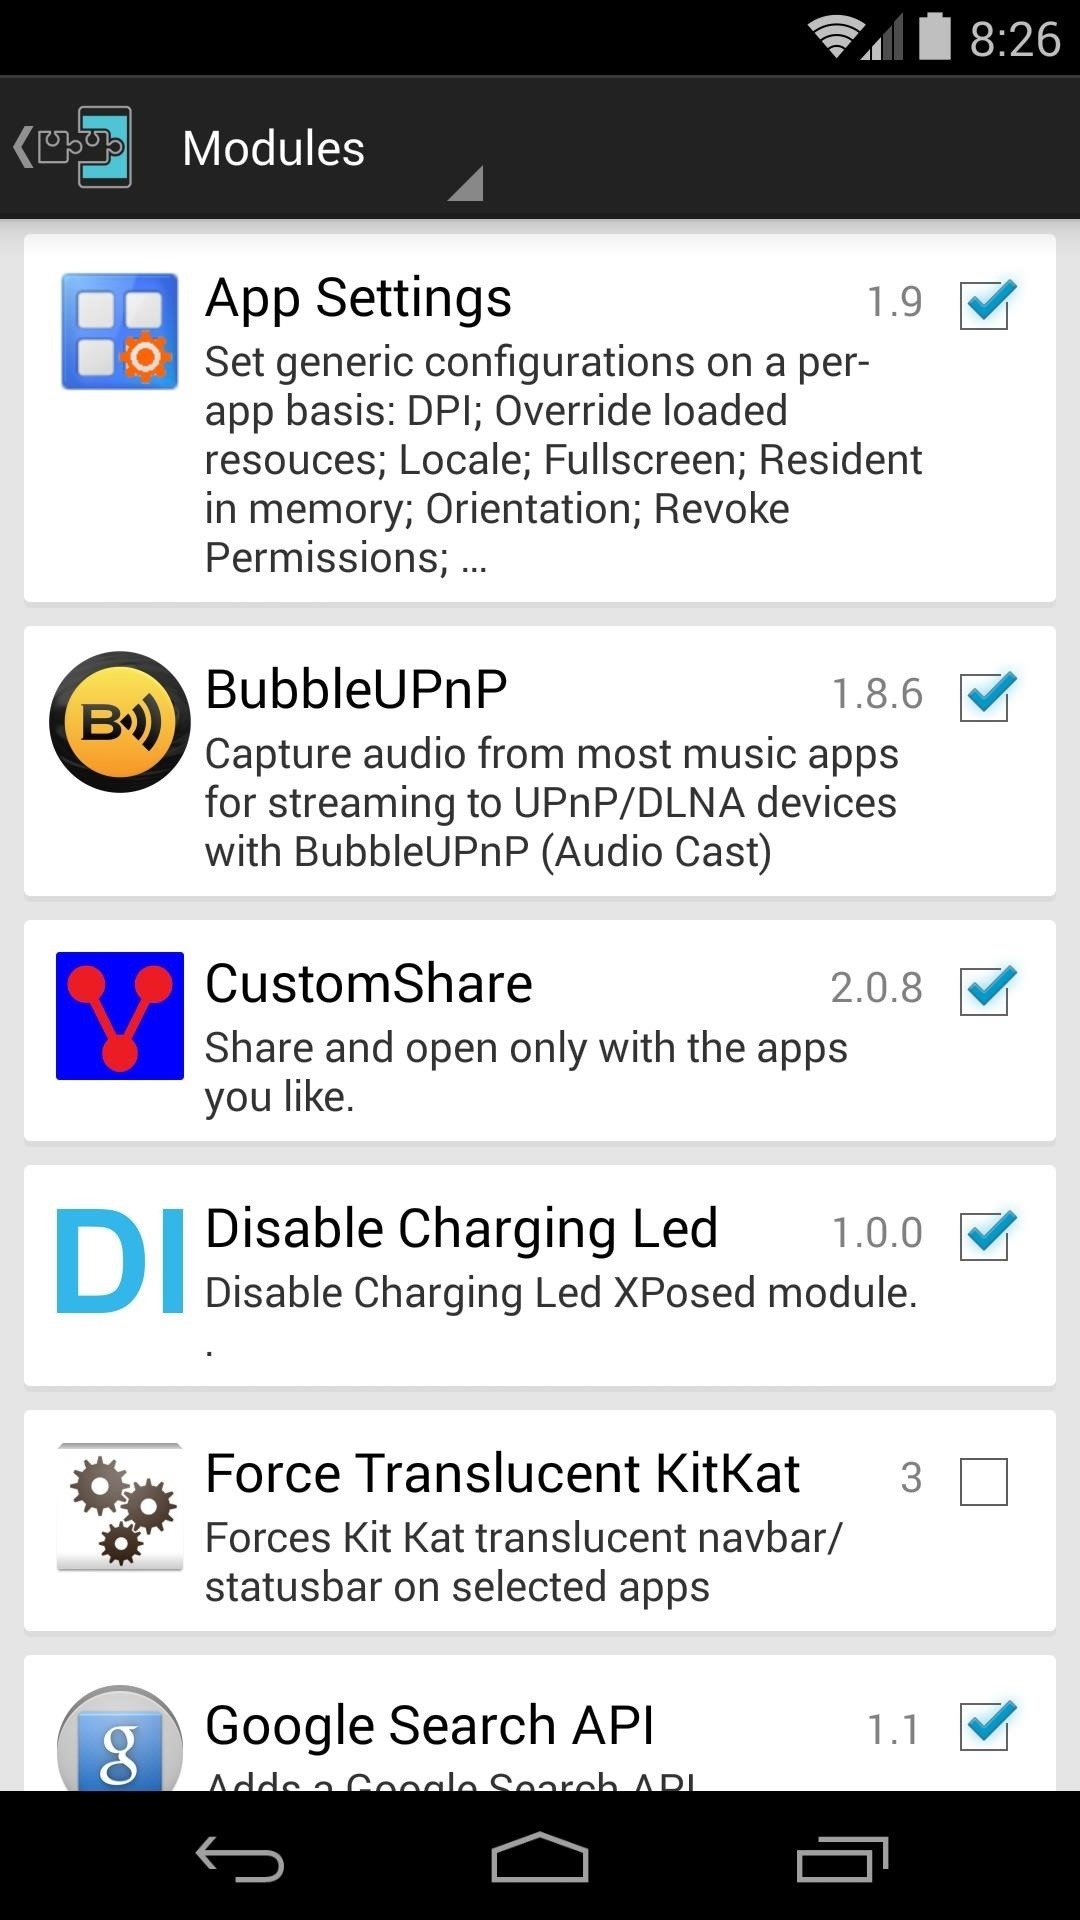 Xposed Installer Gets New Features & UI in Massive Update